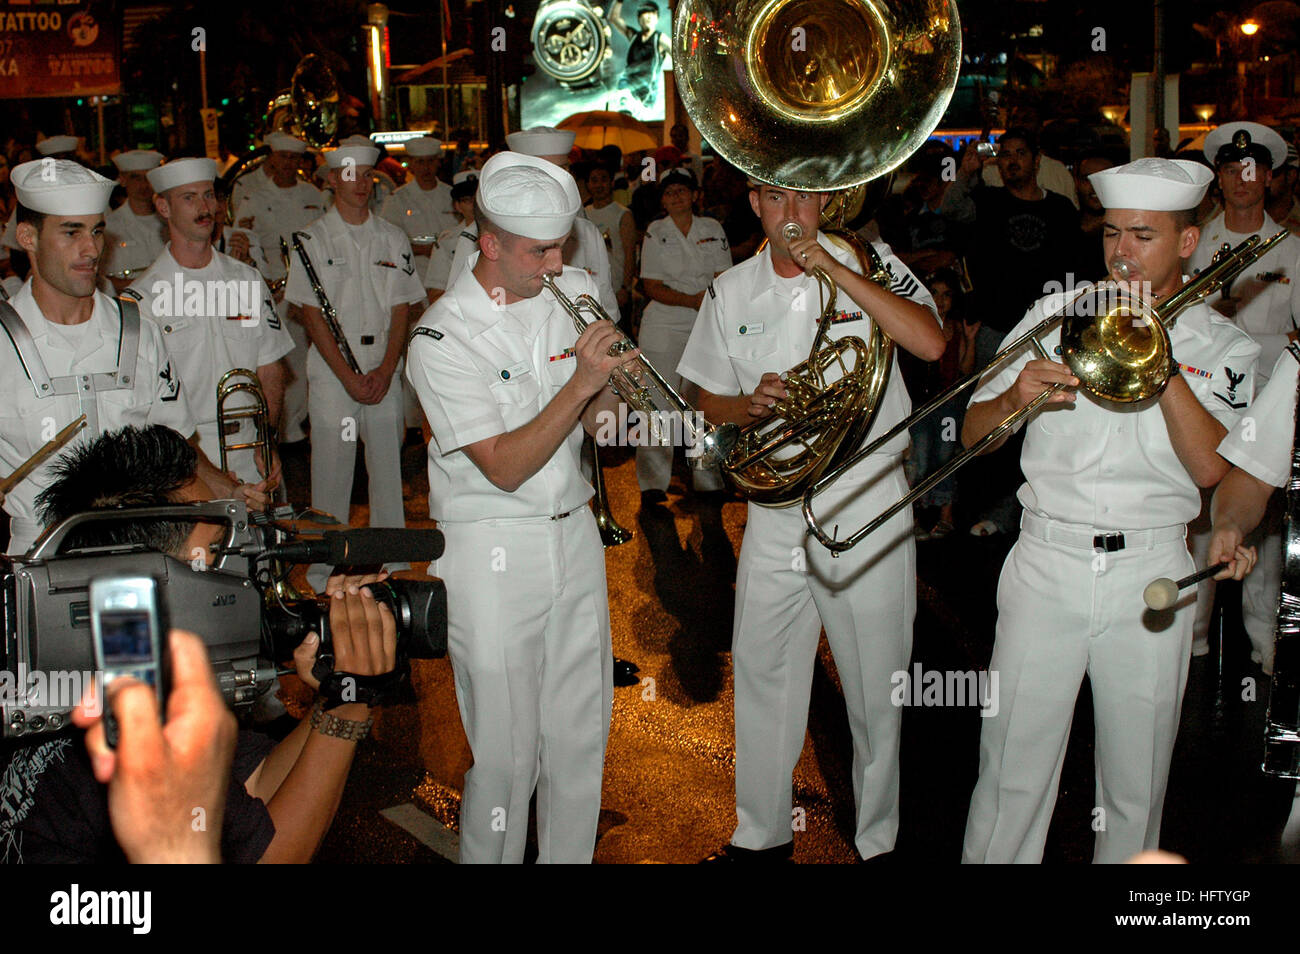 070831-N-5174T-018 KUALA LUMPUR, Malaysia (Aug. 31, 2007) - Sailors from the Pacific Fleet Dixieland Band perform - Stock Image